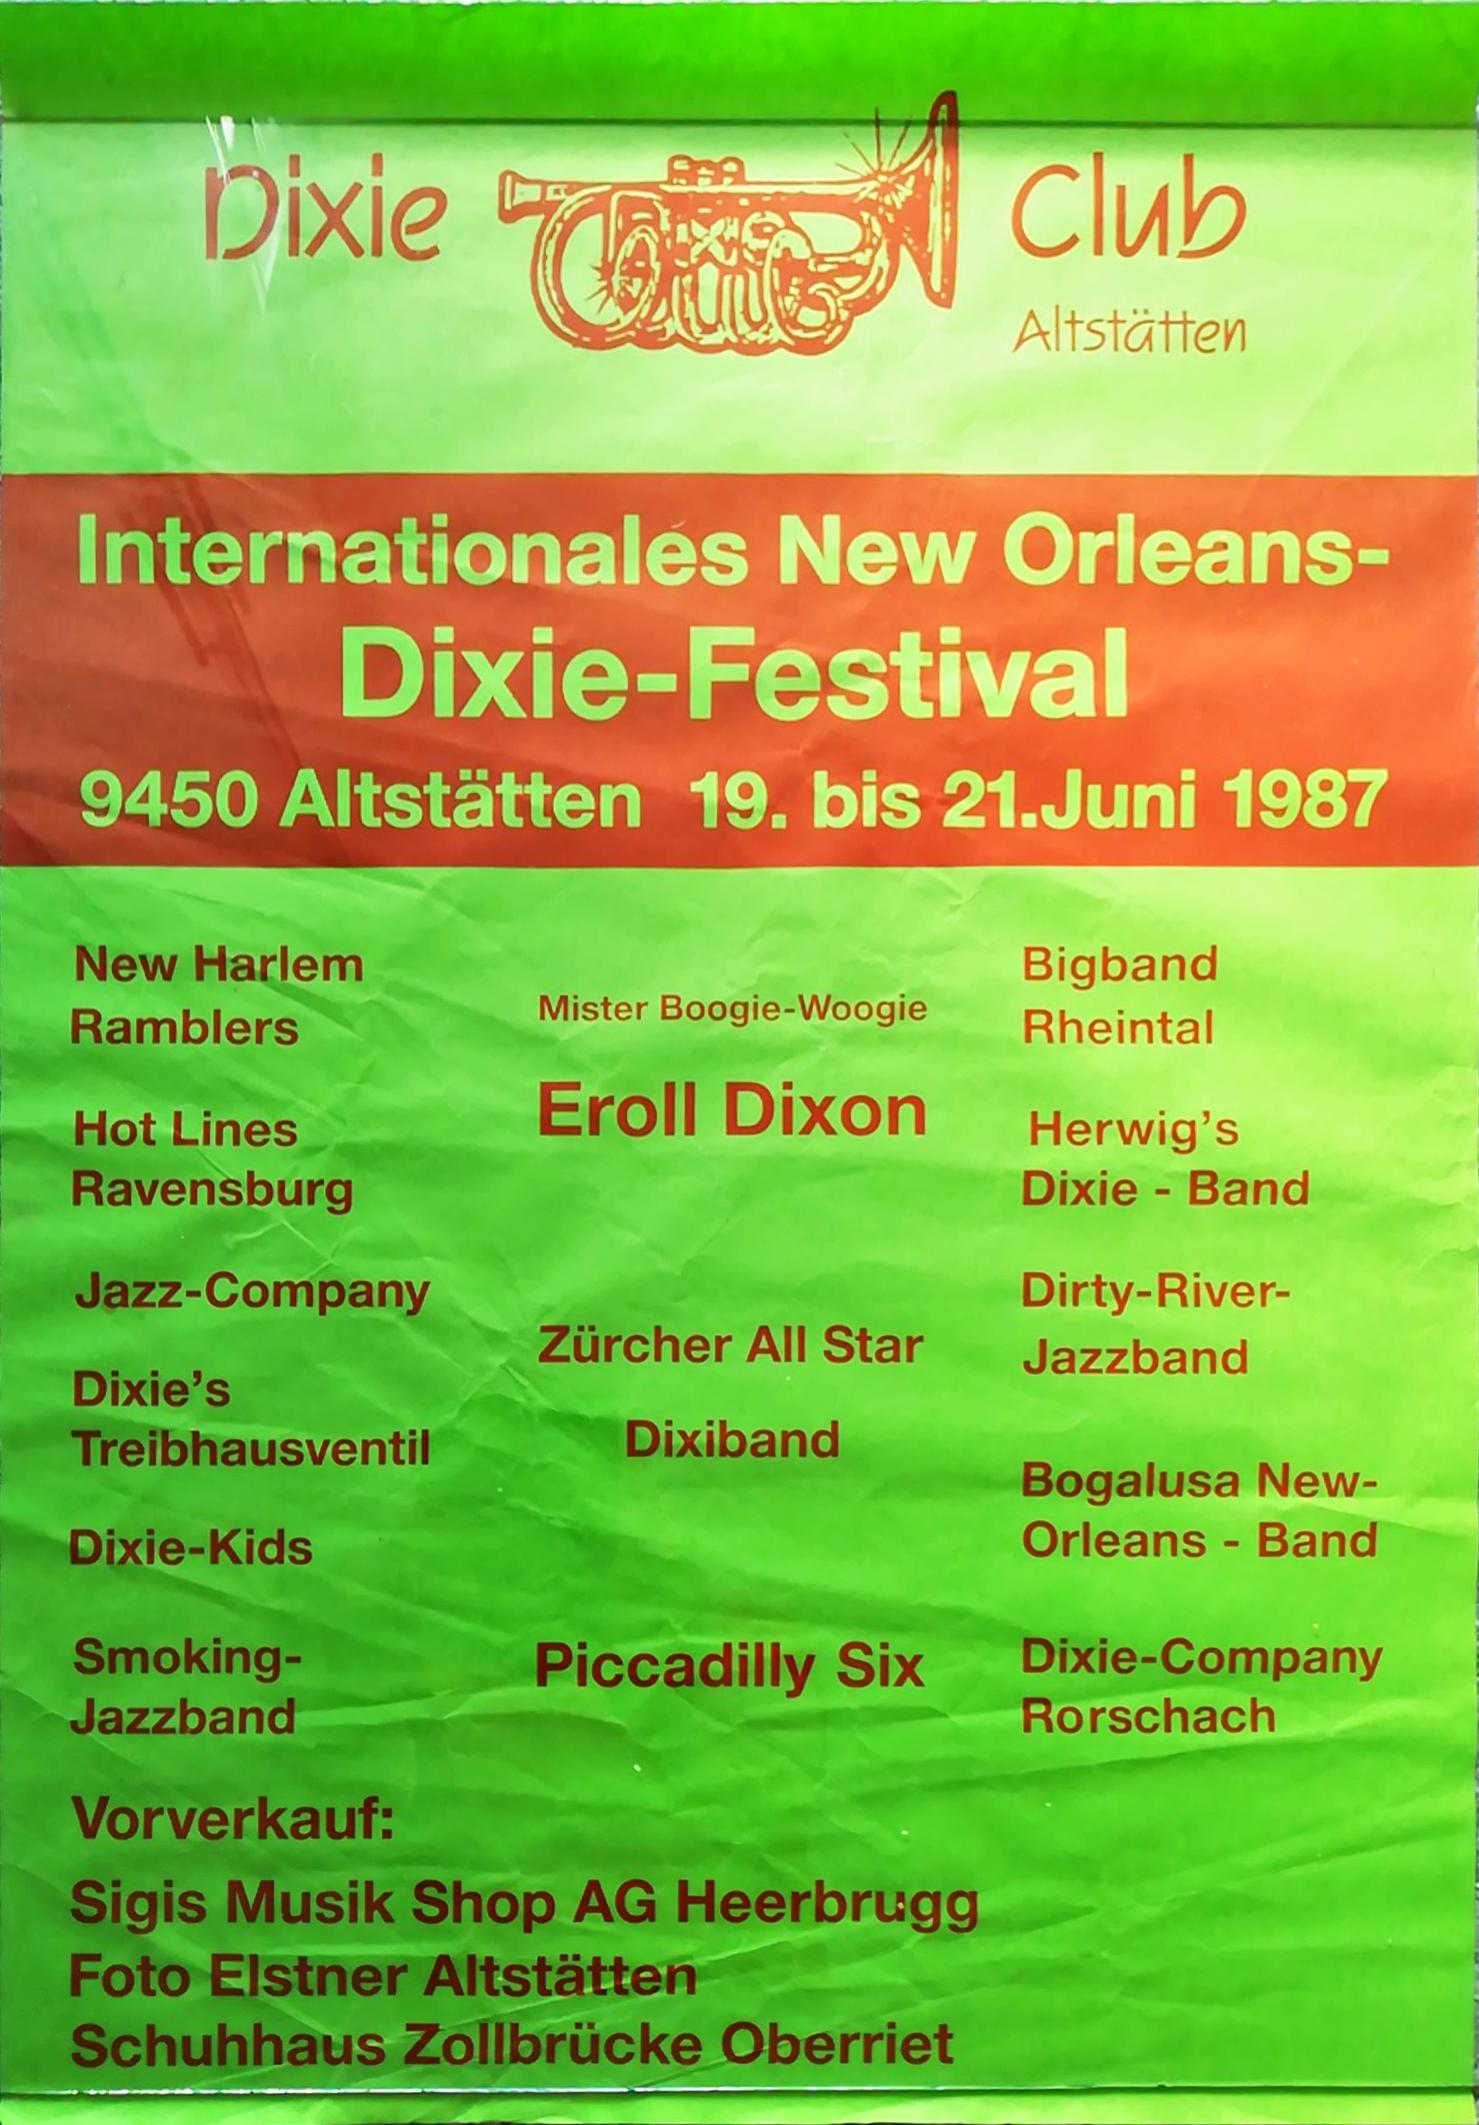 21. Int. New Orleans-Dixie-Festival